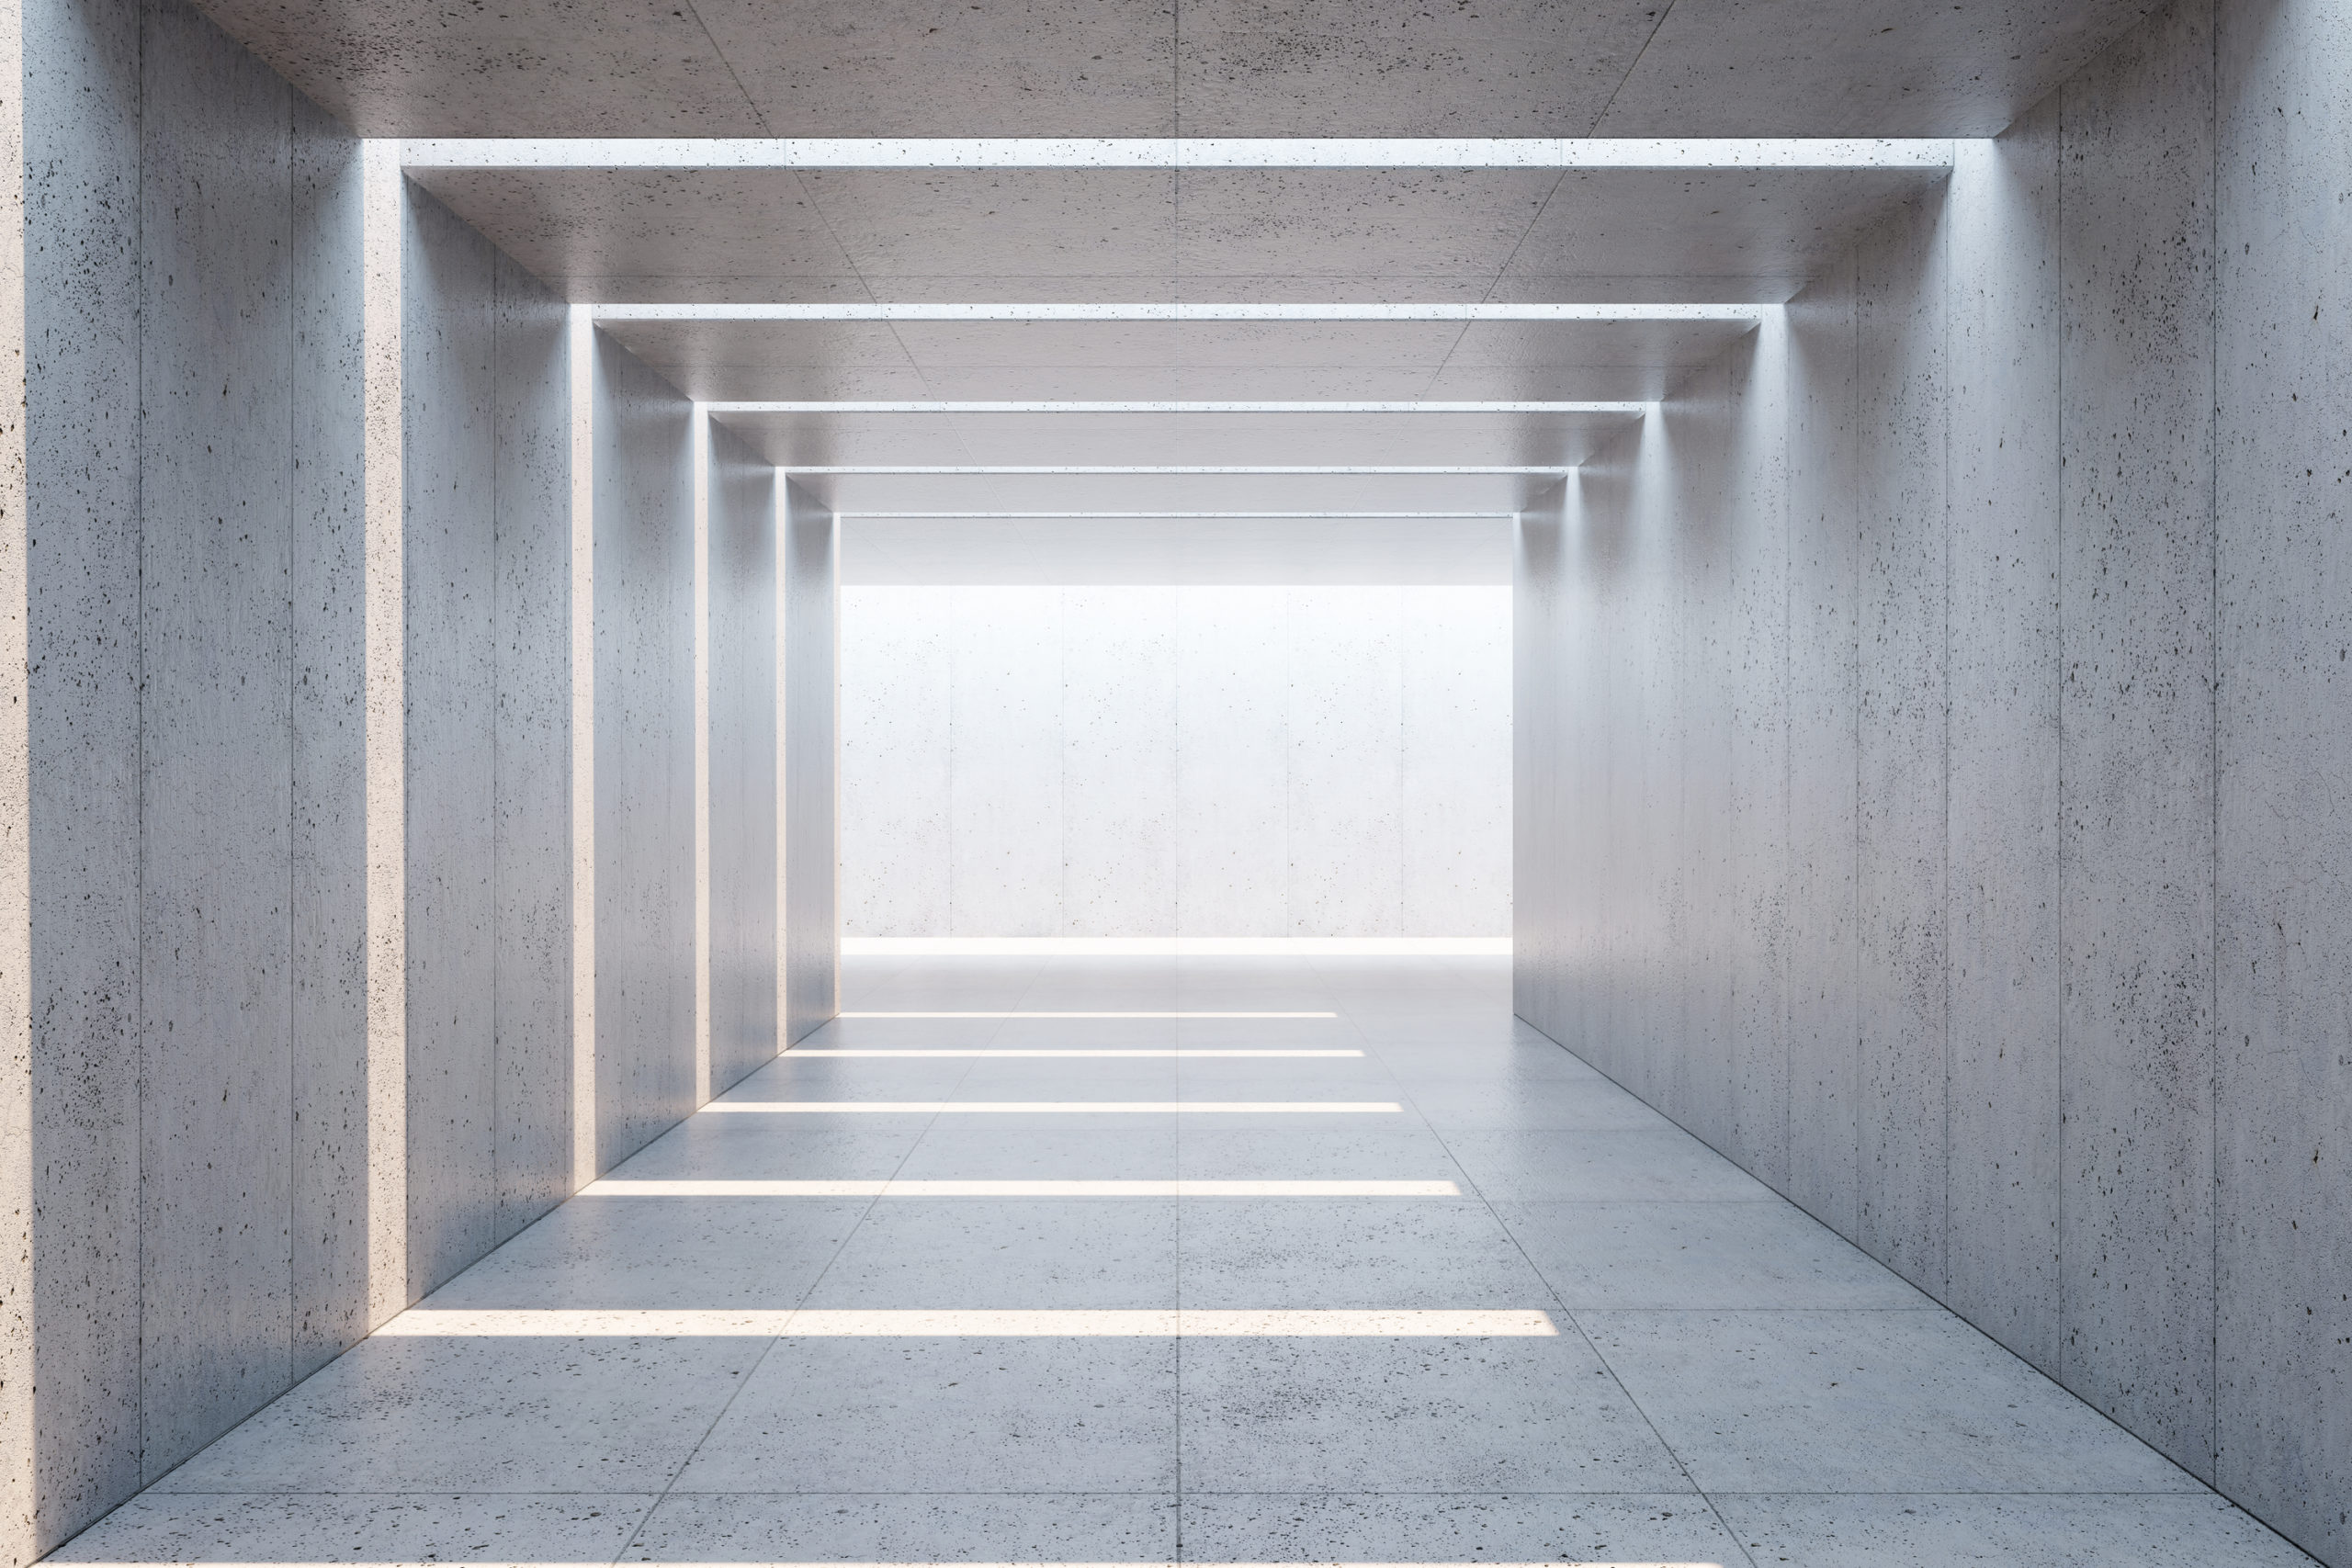 blank concrete space interior to illustrate How Precast Concrete Is Made